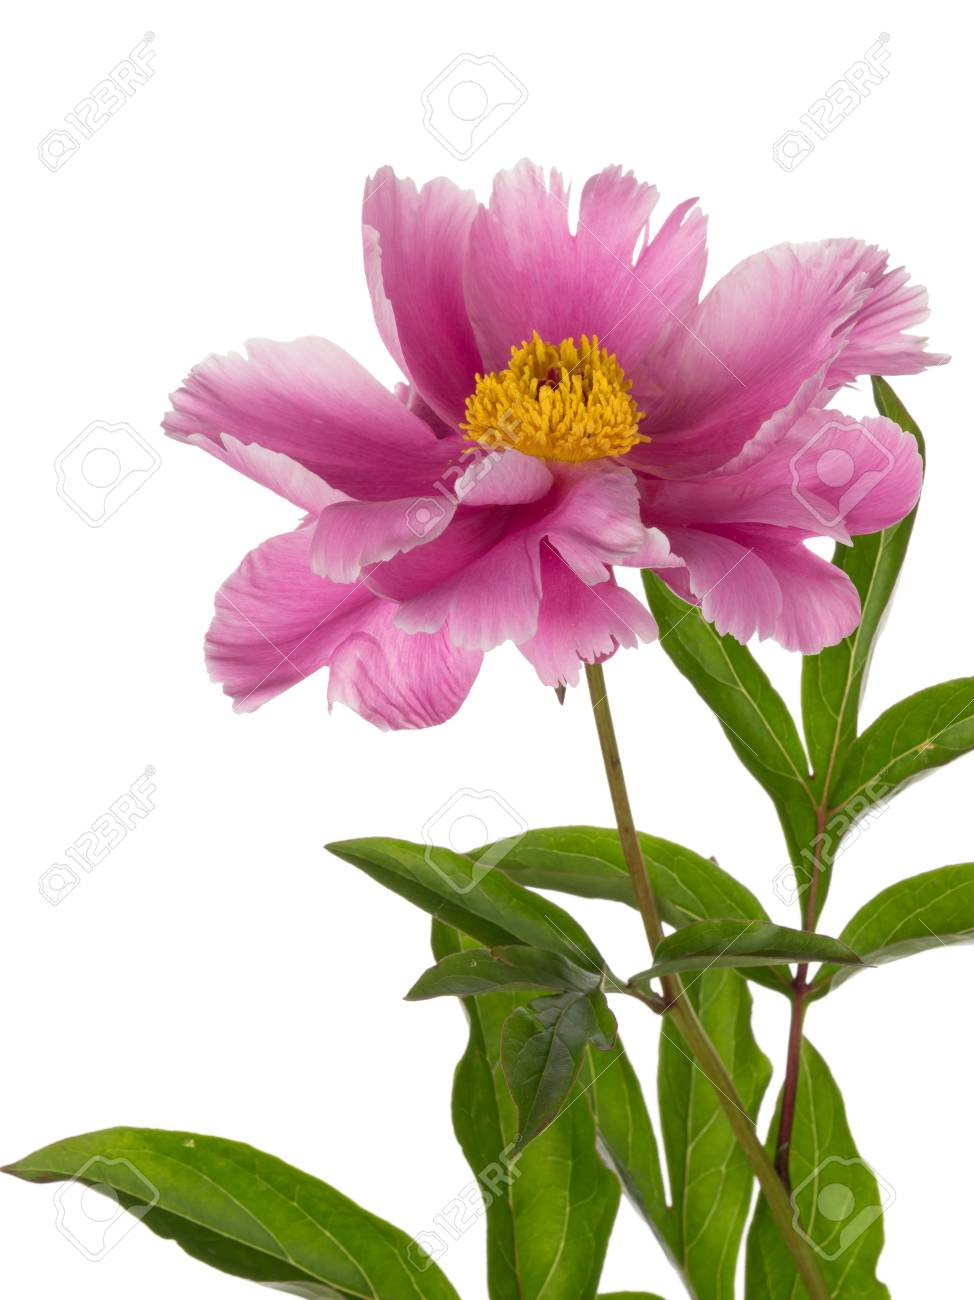 Delicate Pink Flower Garden Peony With A Yellow Center And A Stock